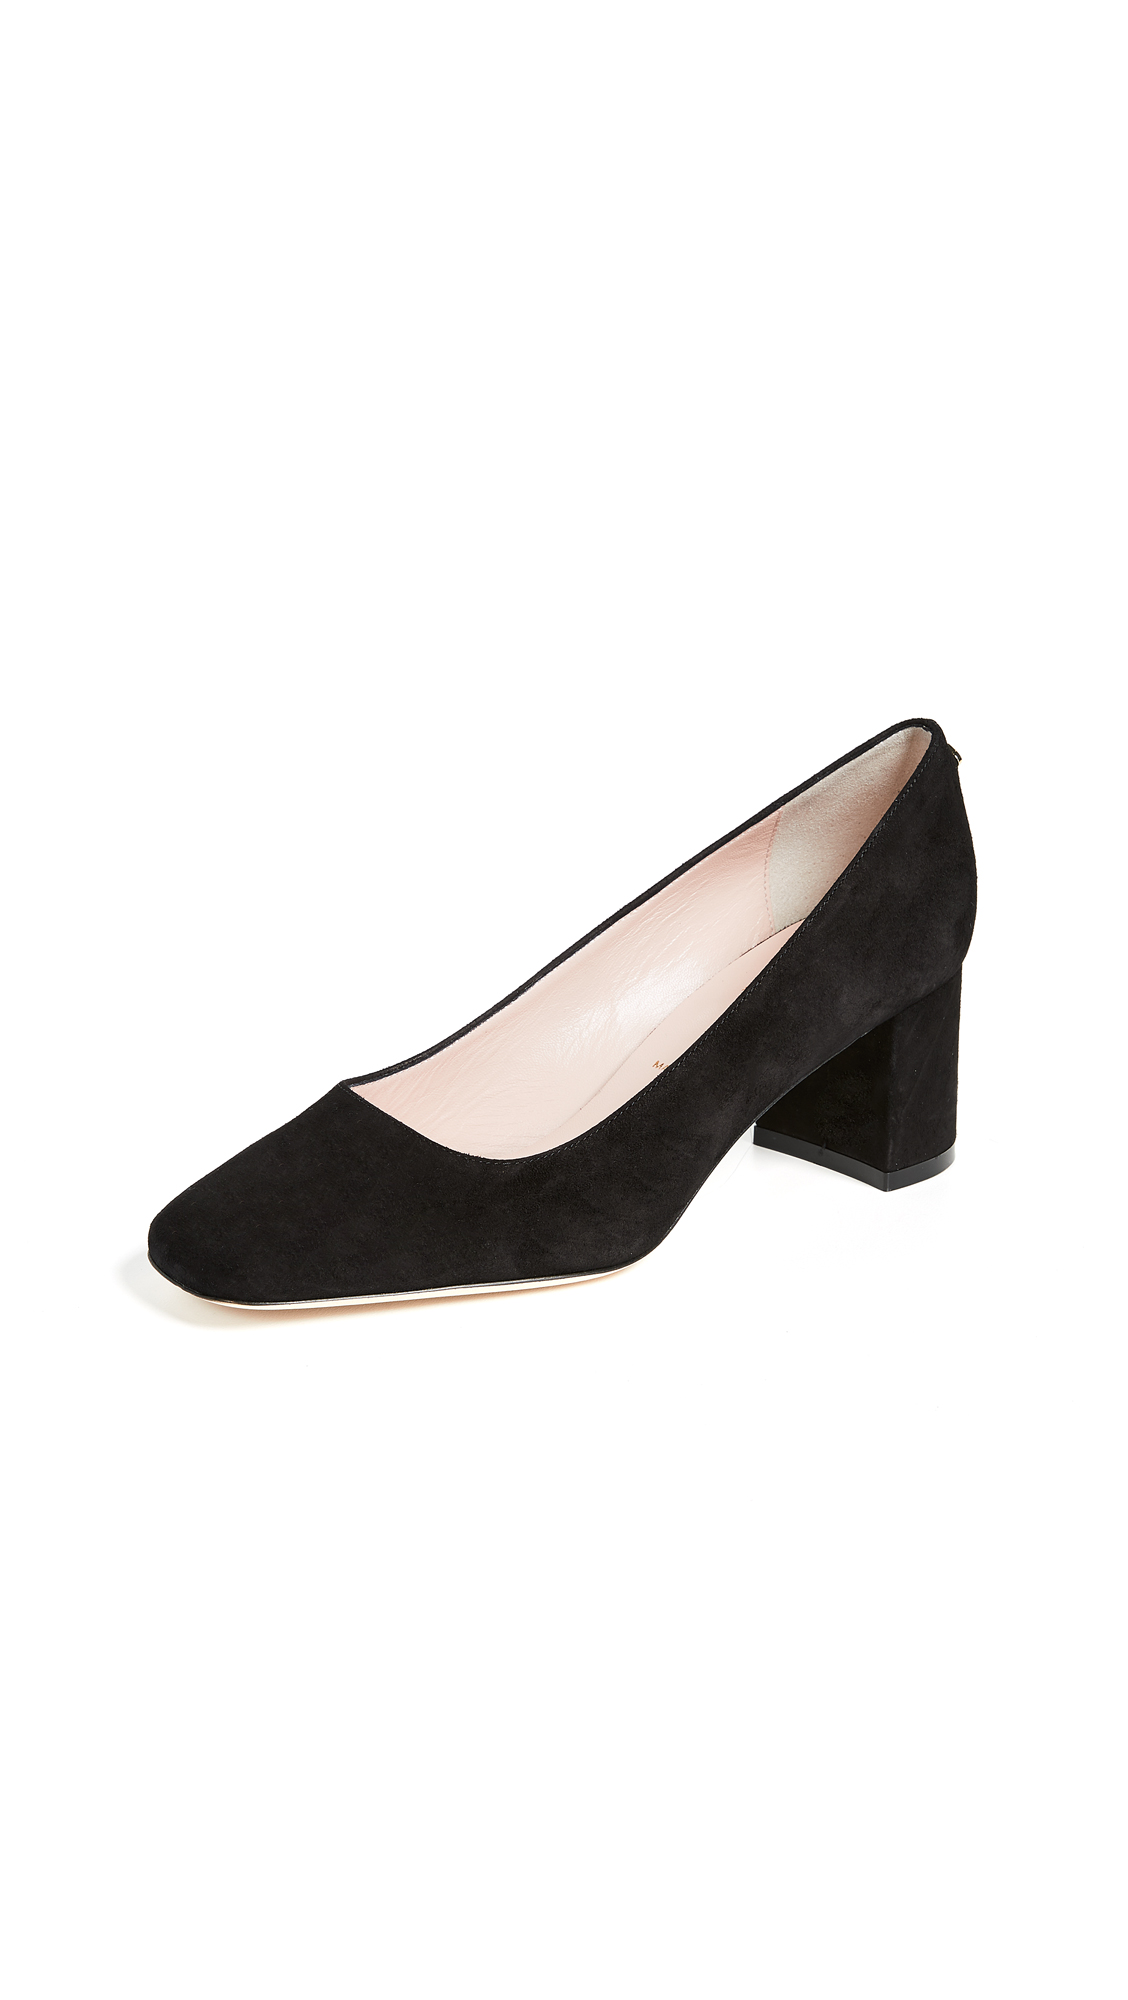 Kate Spade New York Kylah Square Toe Pumps - Black